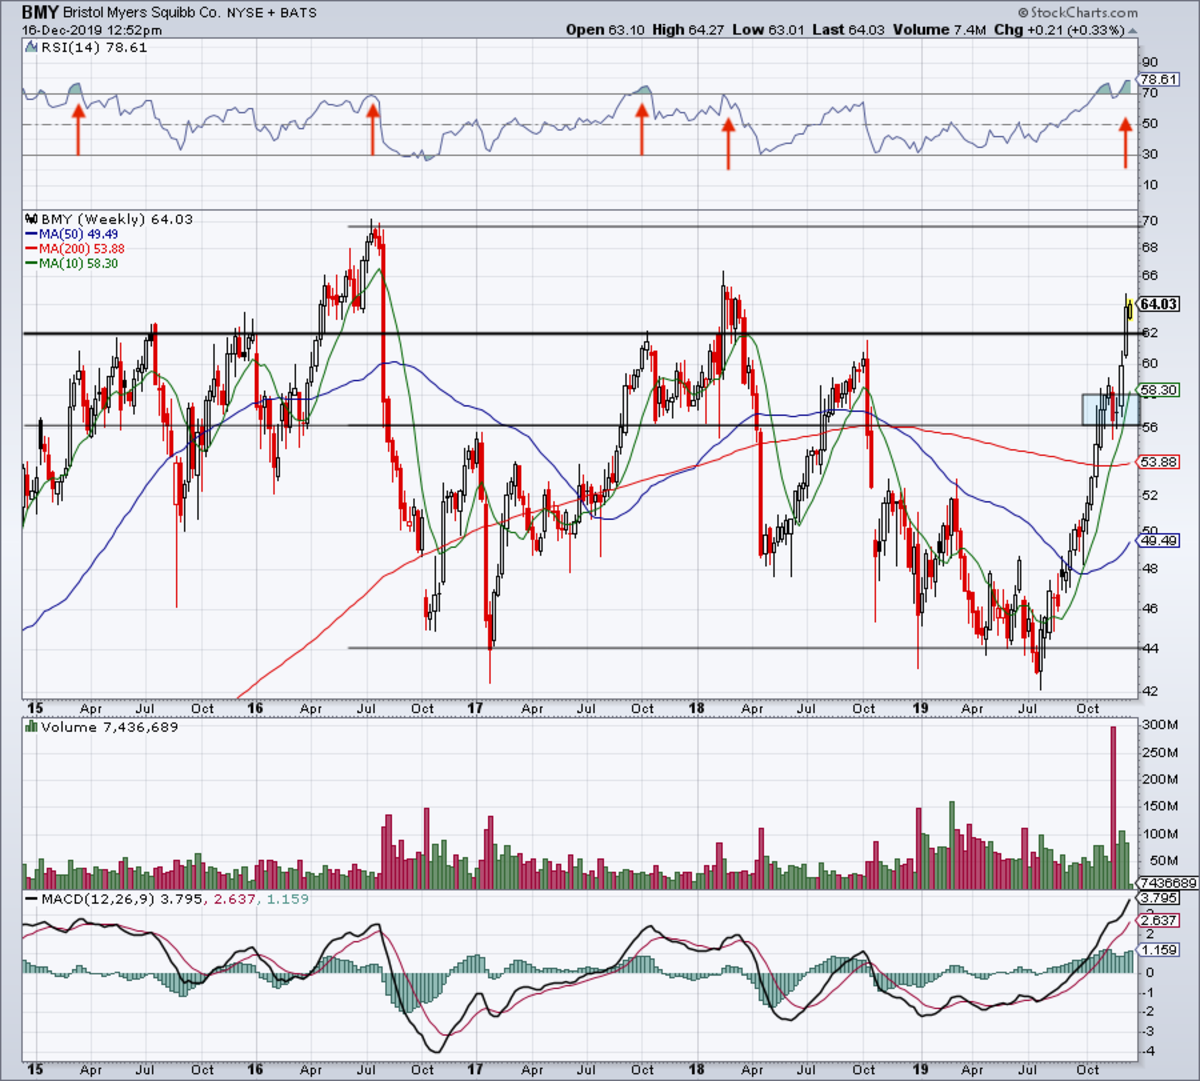 Weekly chart of Bristol-Myers stock.